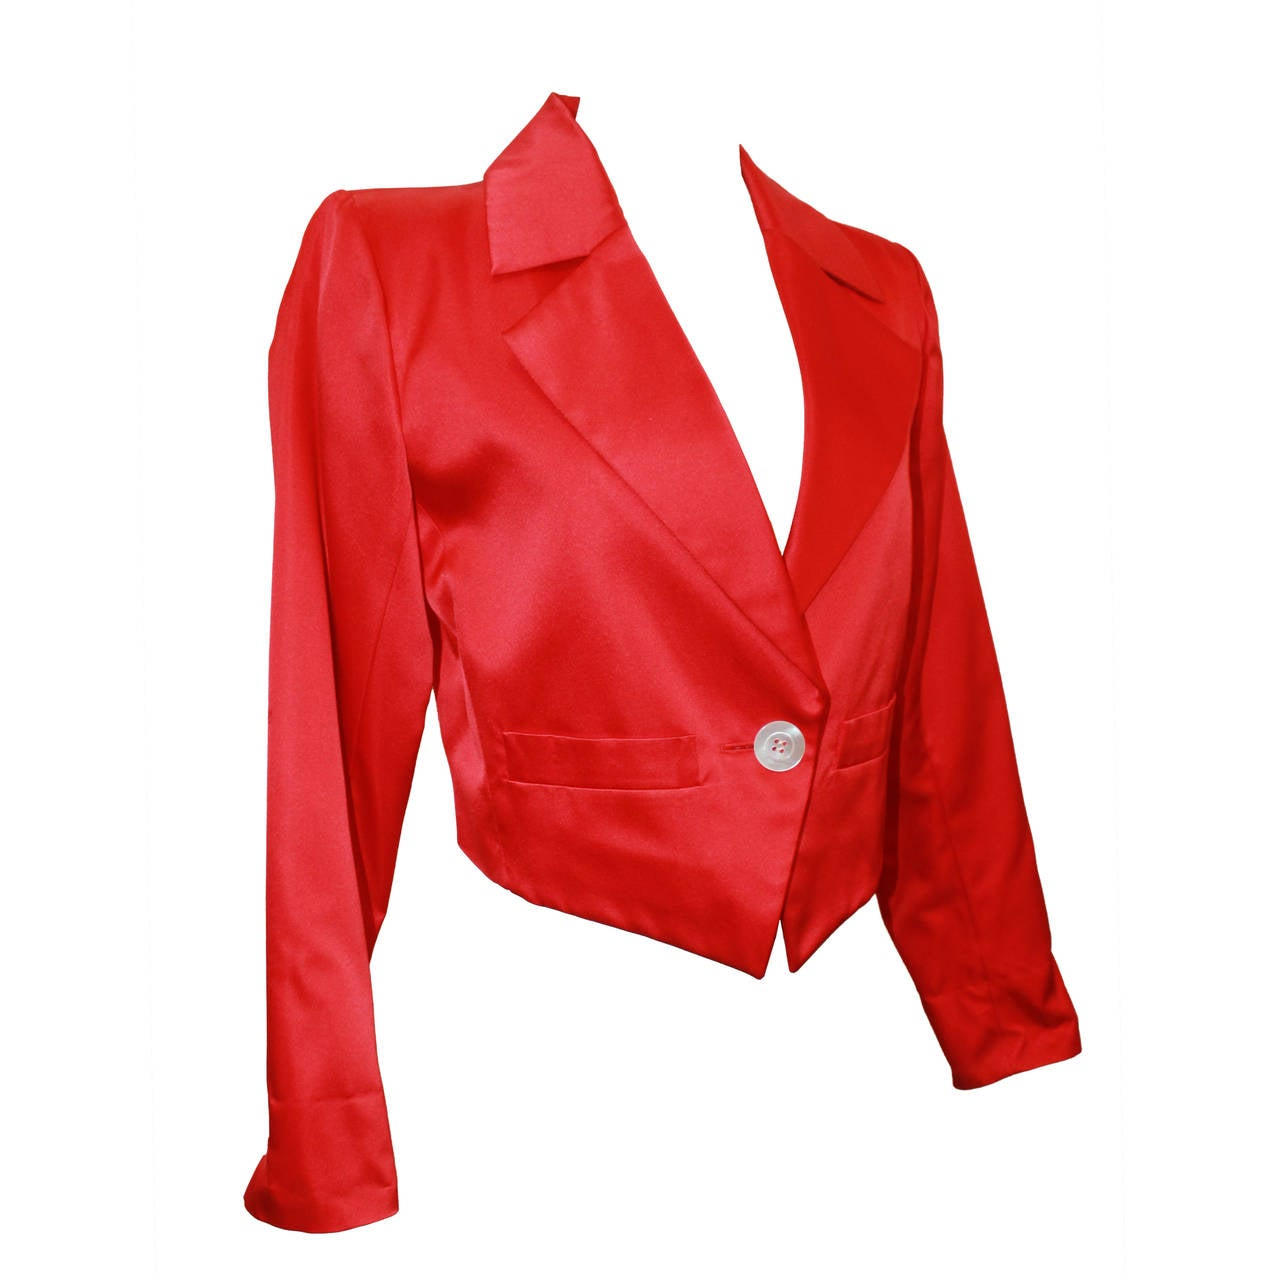 d5d618b4a8d Vintage 1990s Yves Saint Laurent Red Satin Bolero Jacket - 36 For Sale at  1stdibs